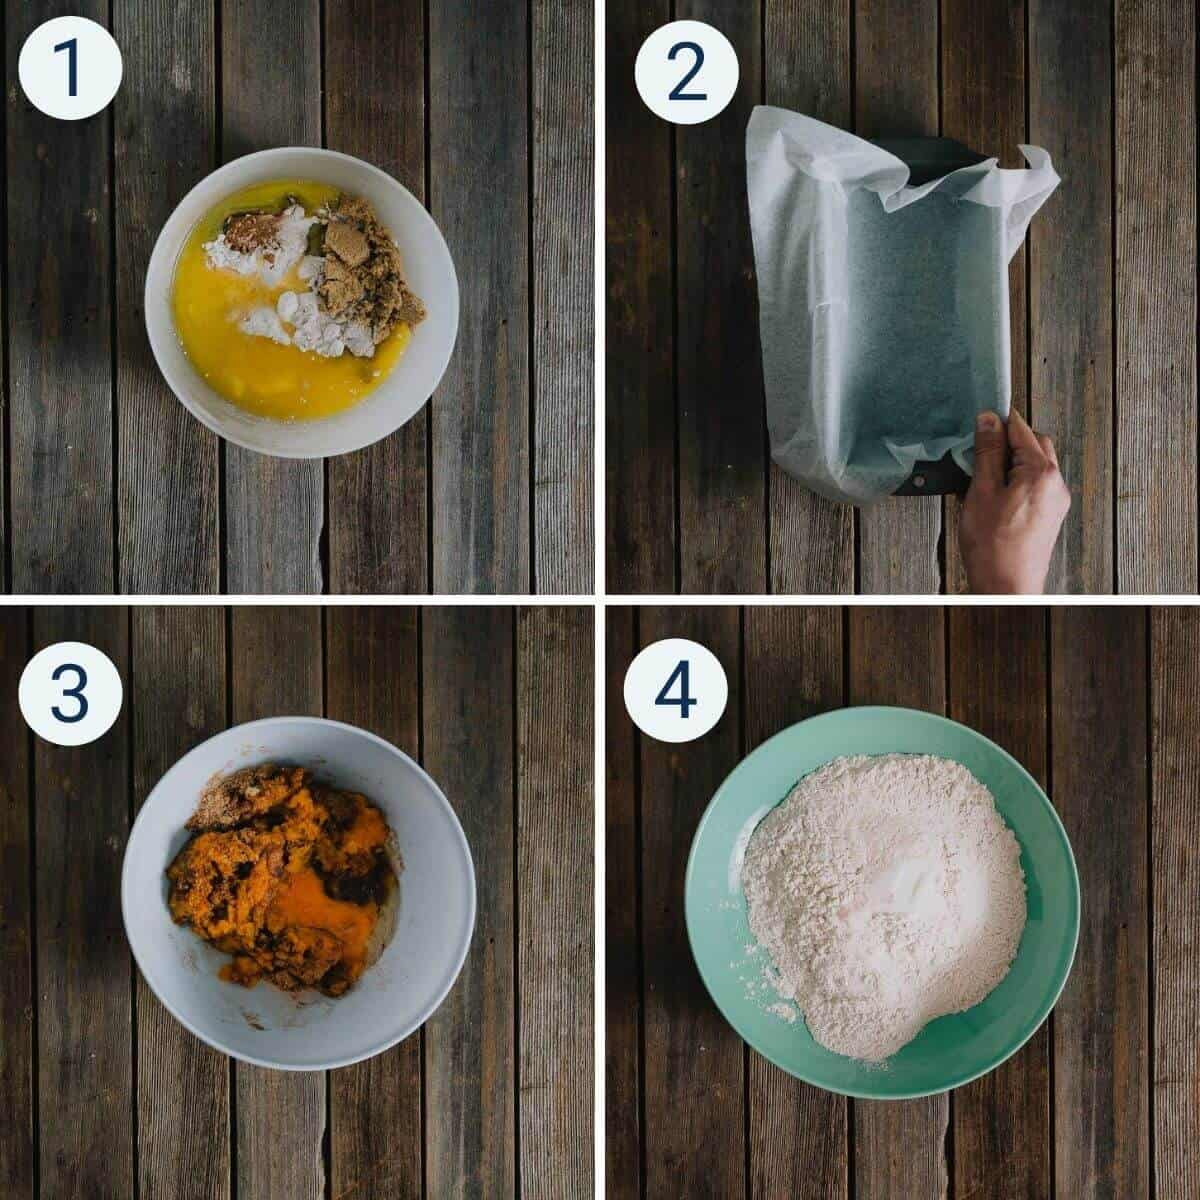 Steps for how to make pumpkin bread.